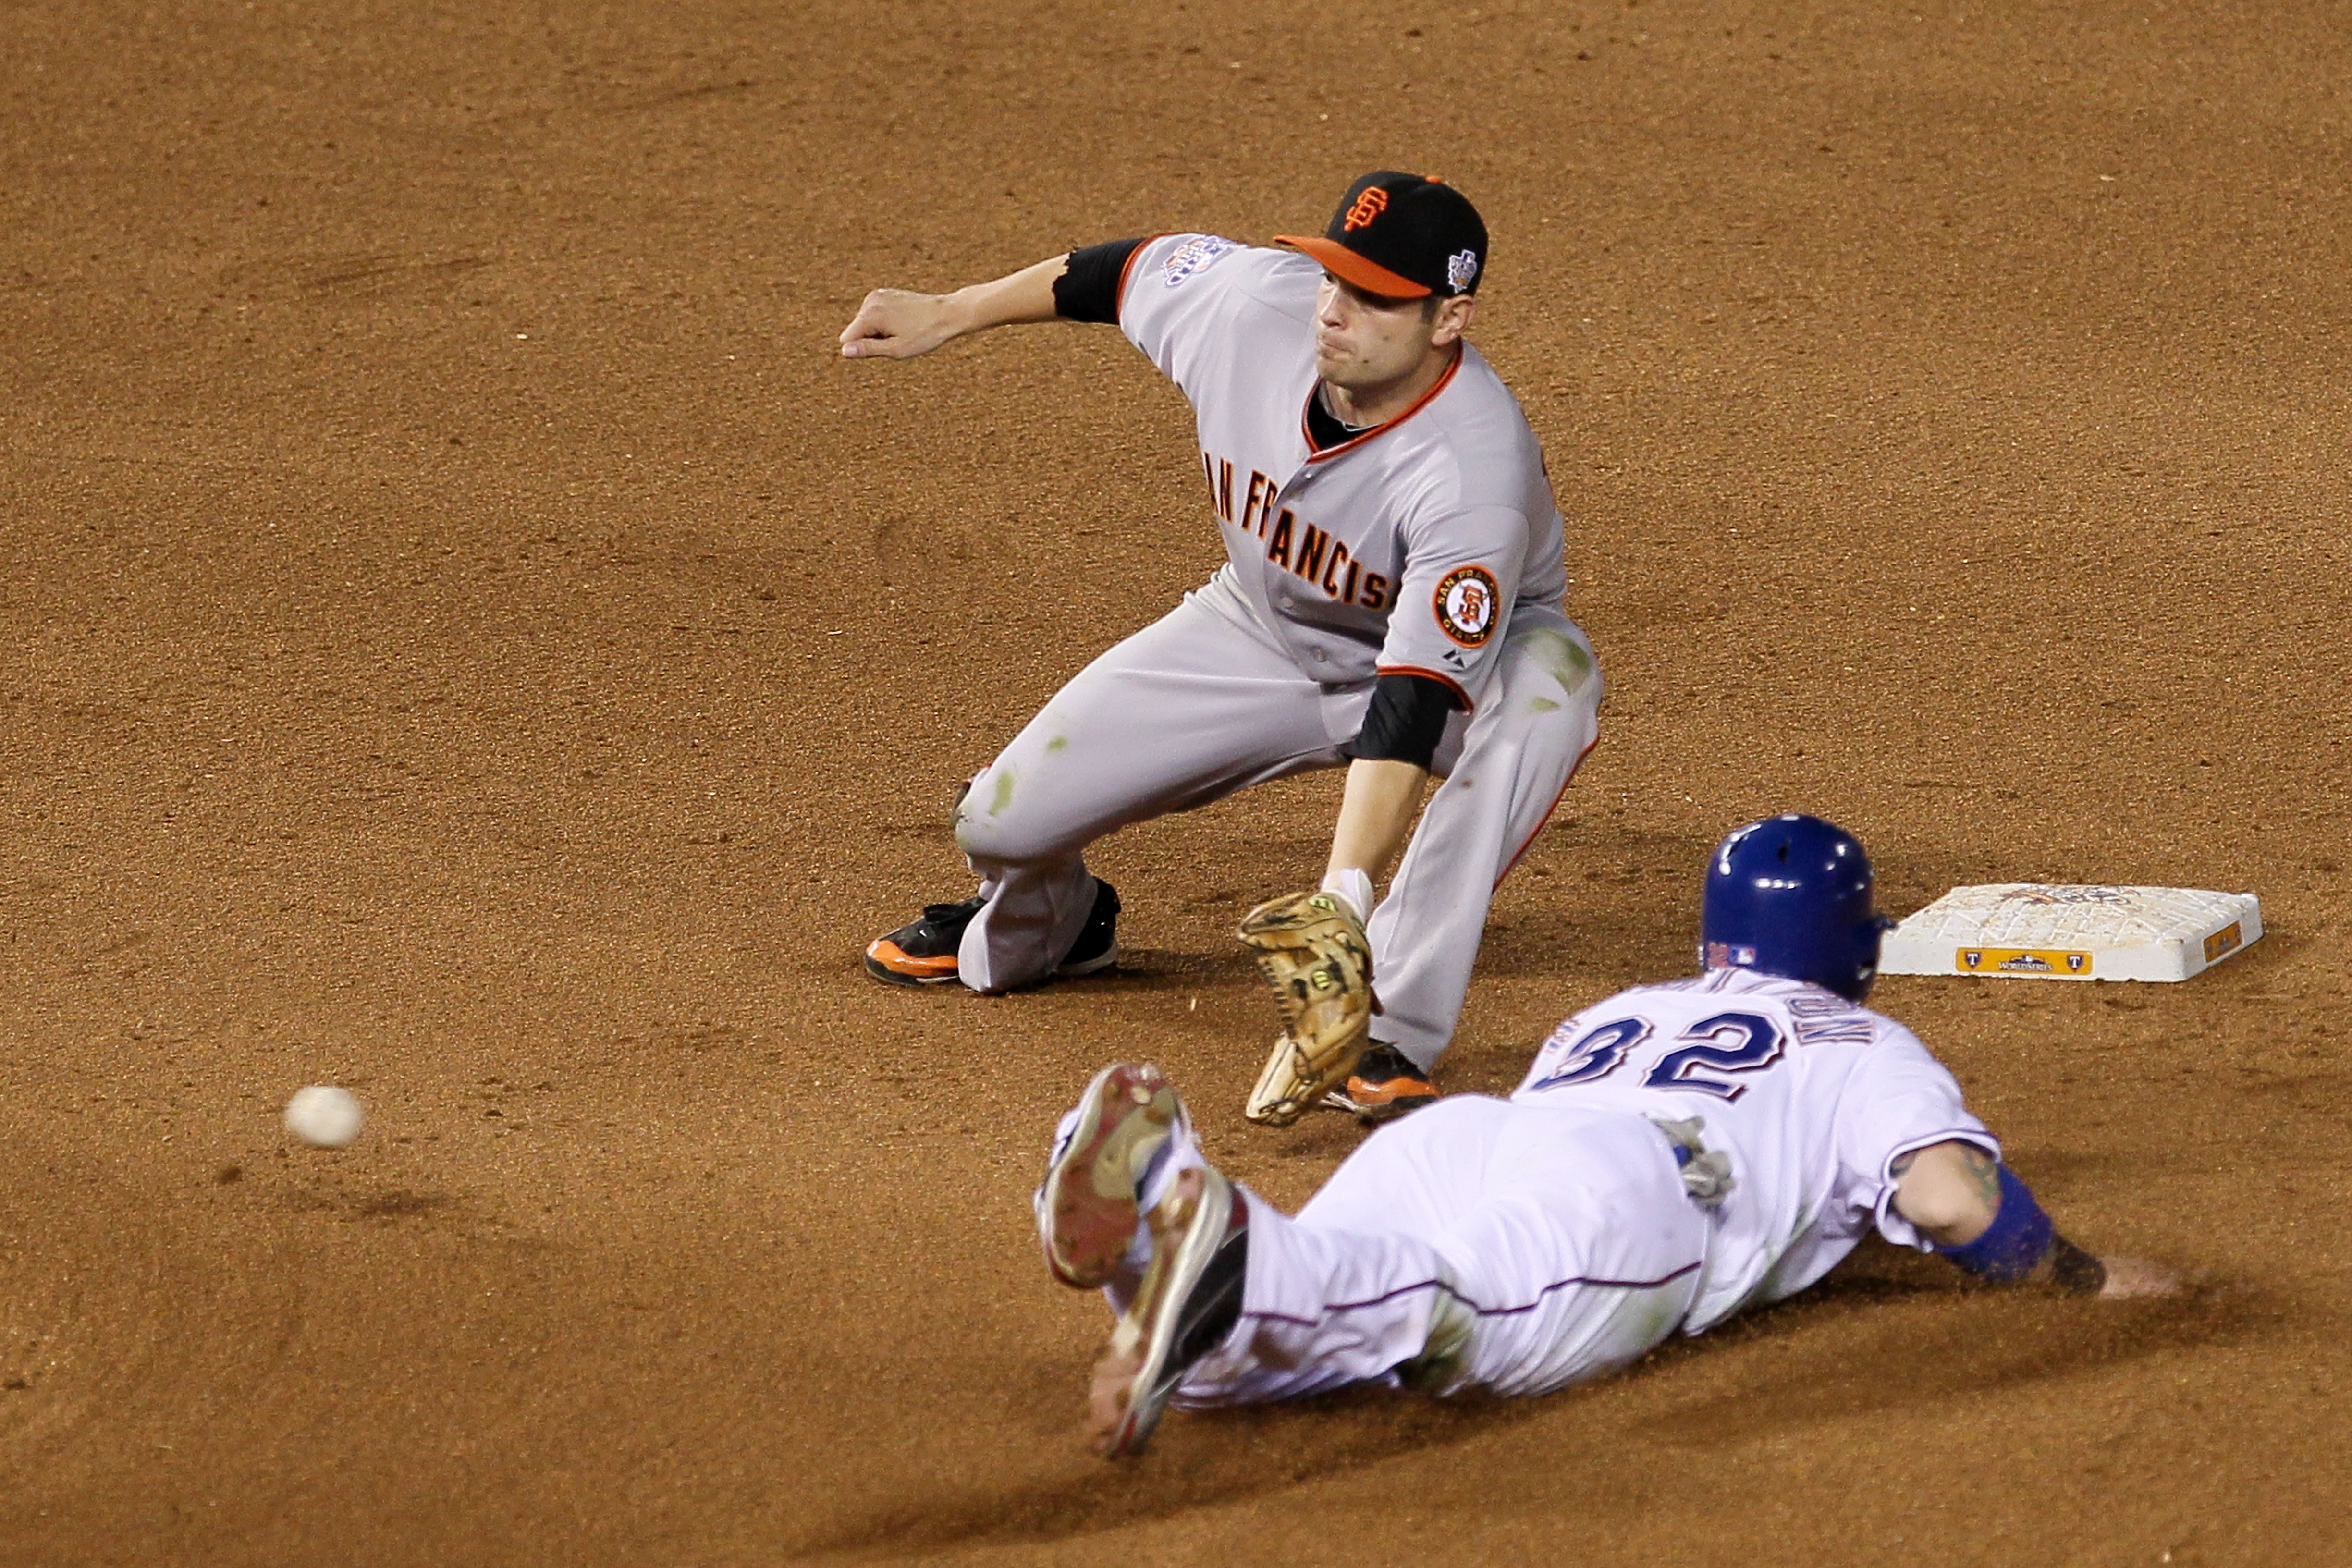 ARLINGTON, TX - OCTOBER 31:  Josh Hamilton #32 of the Texas Rangers steals second under the tag from Freddy Sanchez #21 of the San Francisco Giants in Game Four of the 2010 MLB World Series at Rangers Ballpark in Arlington on October 31, 2010 in Arlington